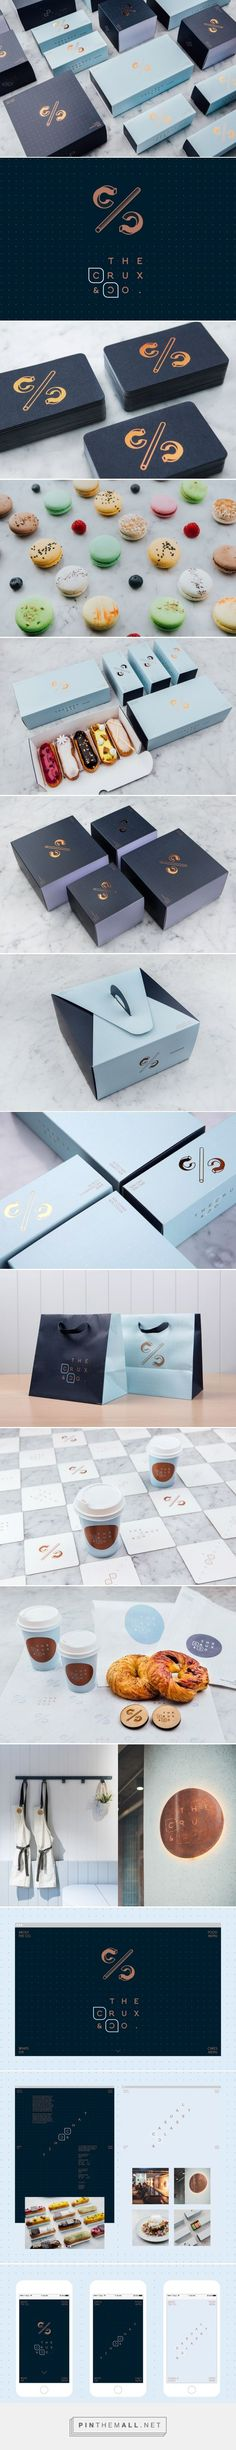 The Crux & Co. Café and Patisserie Branding and Packaging by Hue Studio | Fivestar Branding Agency – Design and Branding Agency & Curated Inspiration Gallery #cafe #cafebranding #branding #brand #branddesign #brandinginspiration #design #packaging #package #packagingdesign #packagedesign #design #behance #dribbble #pinterest